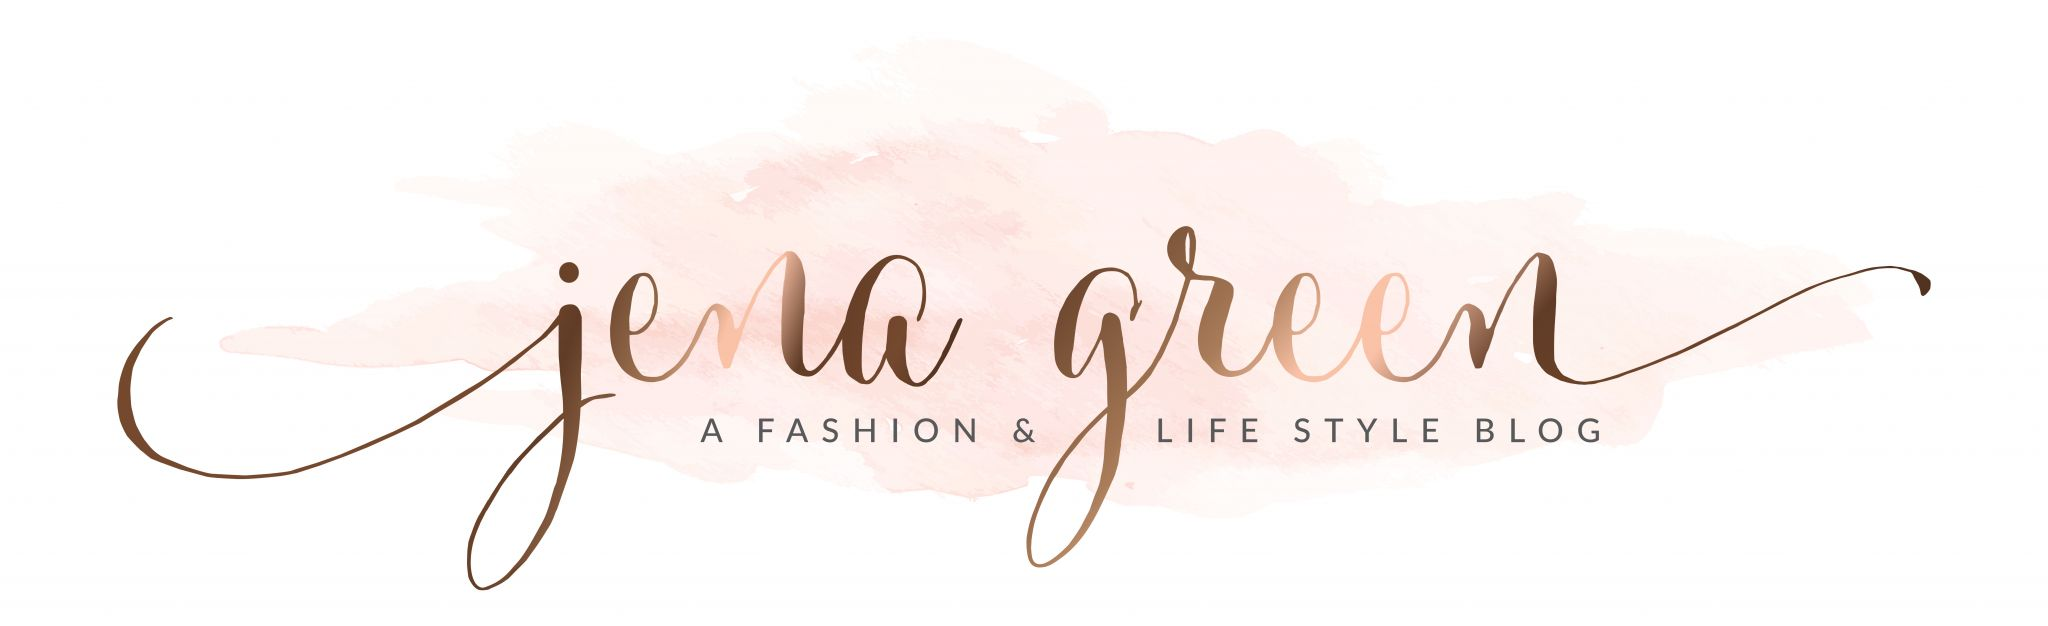 Jena Green – A Fashion & Life Style Blog